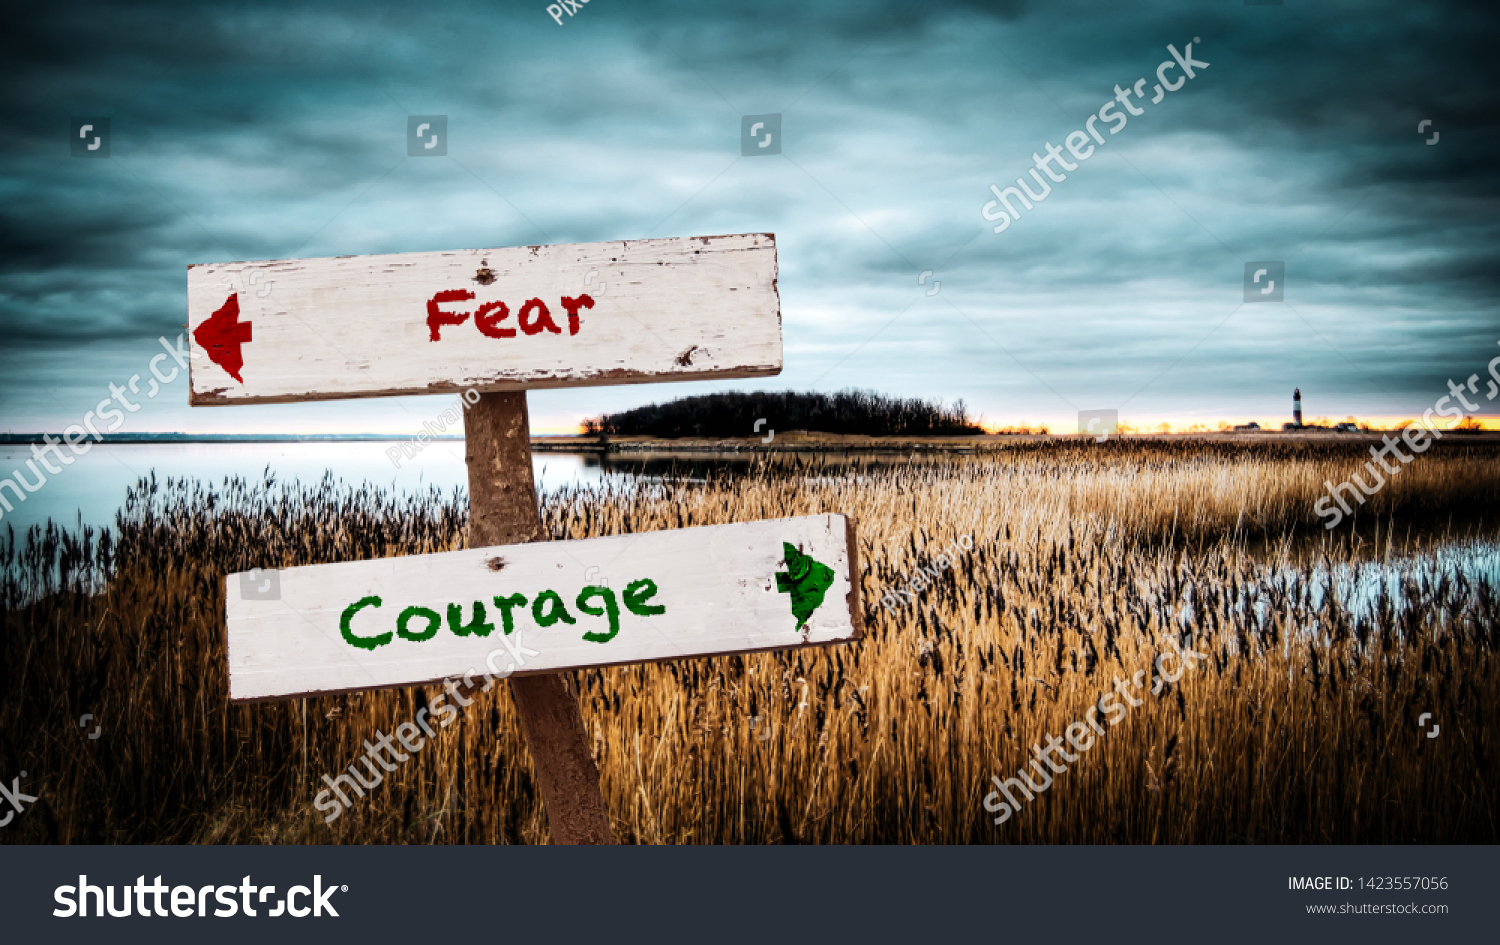 Street Sign the Direction Way to Courage versus Fear #1423557056